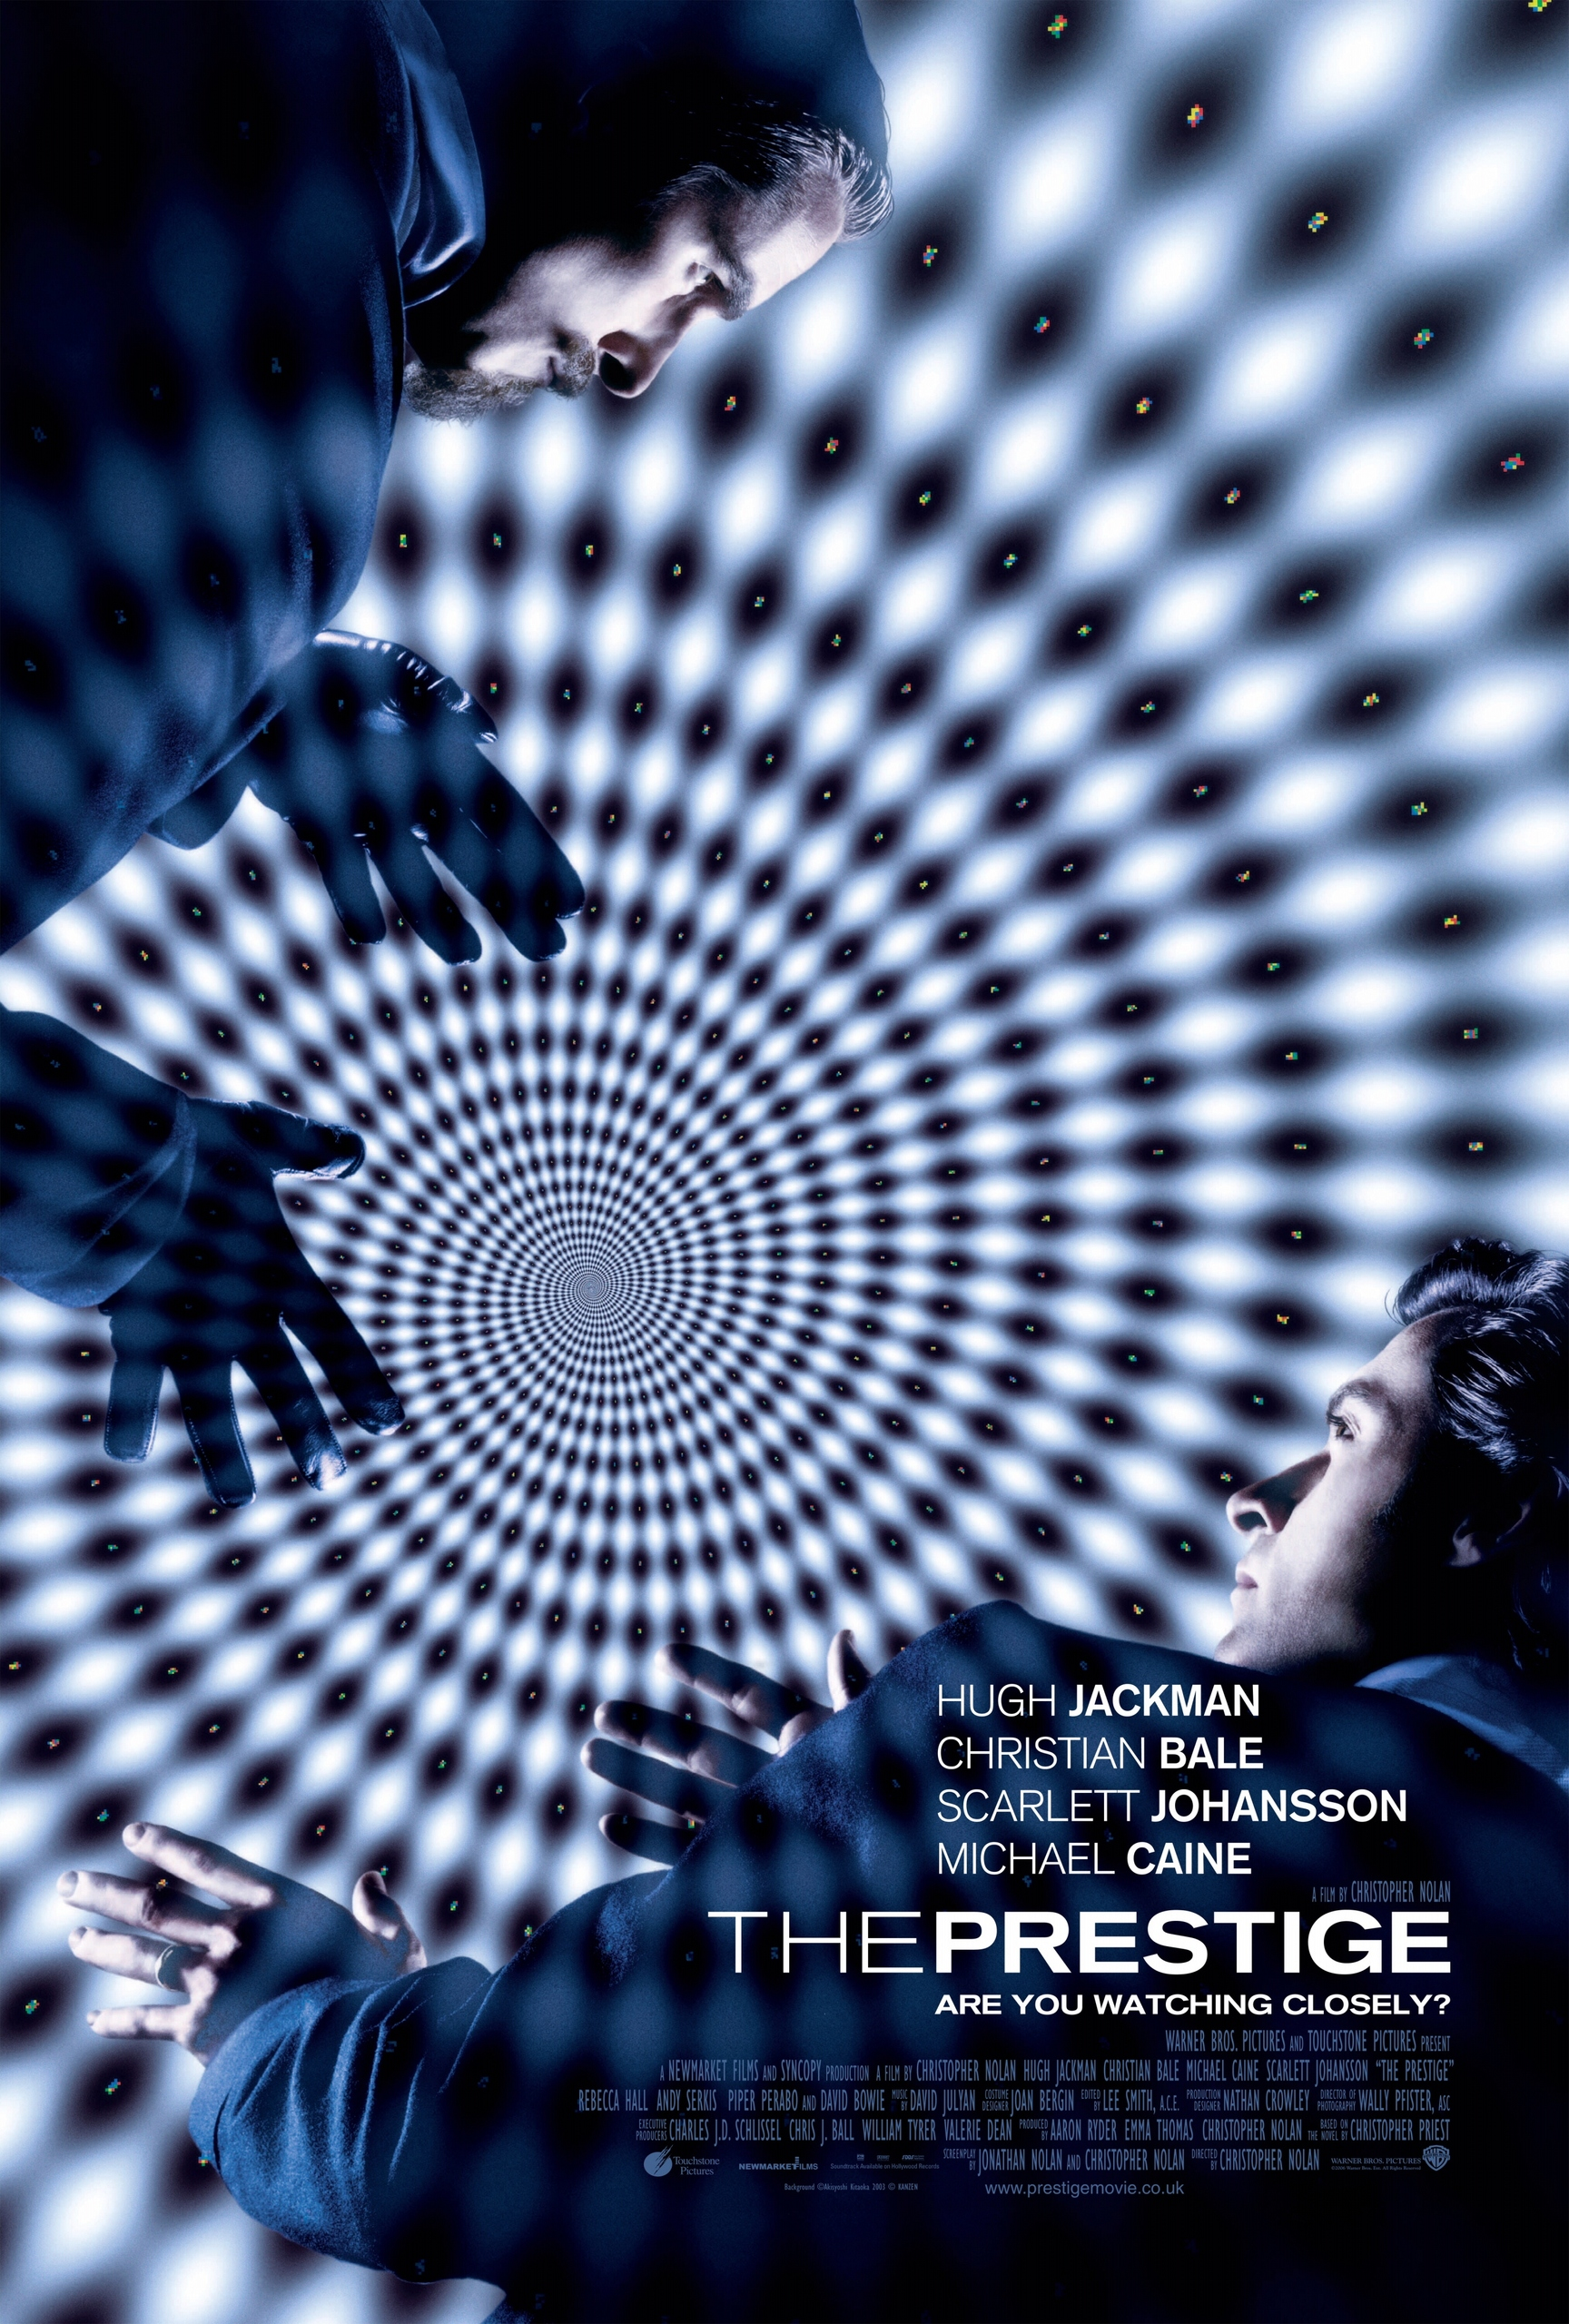 the prestige A mysterious story of two magicians whose intense rivalry leads them on a life- long battle for supremacy -- full of obsession, deceit and jealousy with dangerous and deadly consequences.